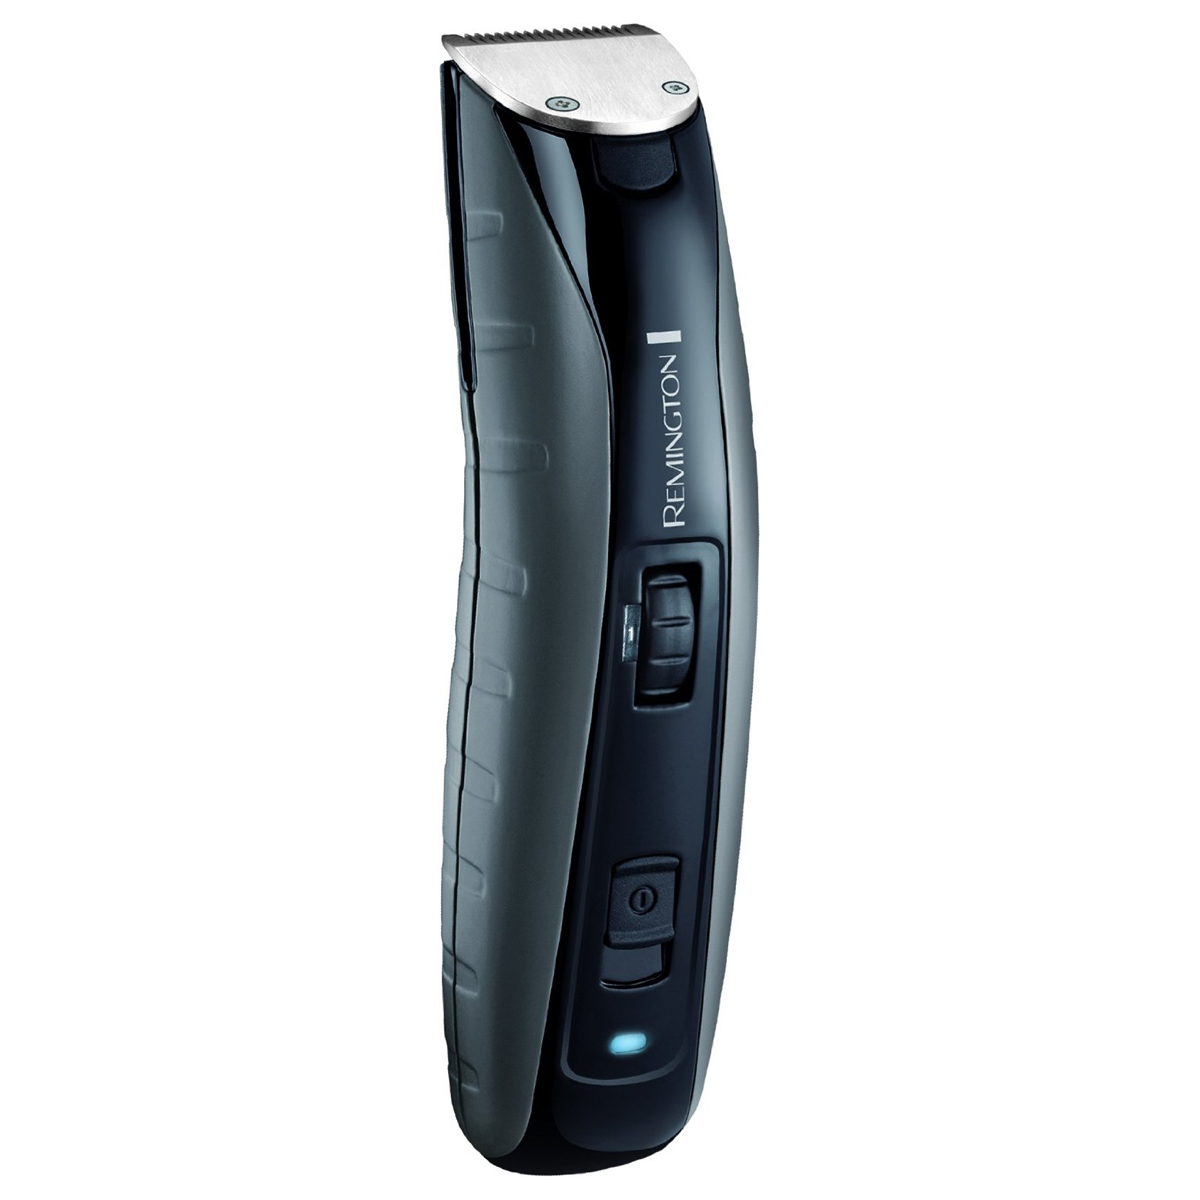 remington mb4850 beard trimmer elf international ltd. Black Bedroom Furniture Sets. Home Design Ideas